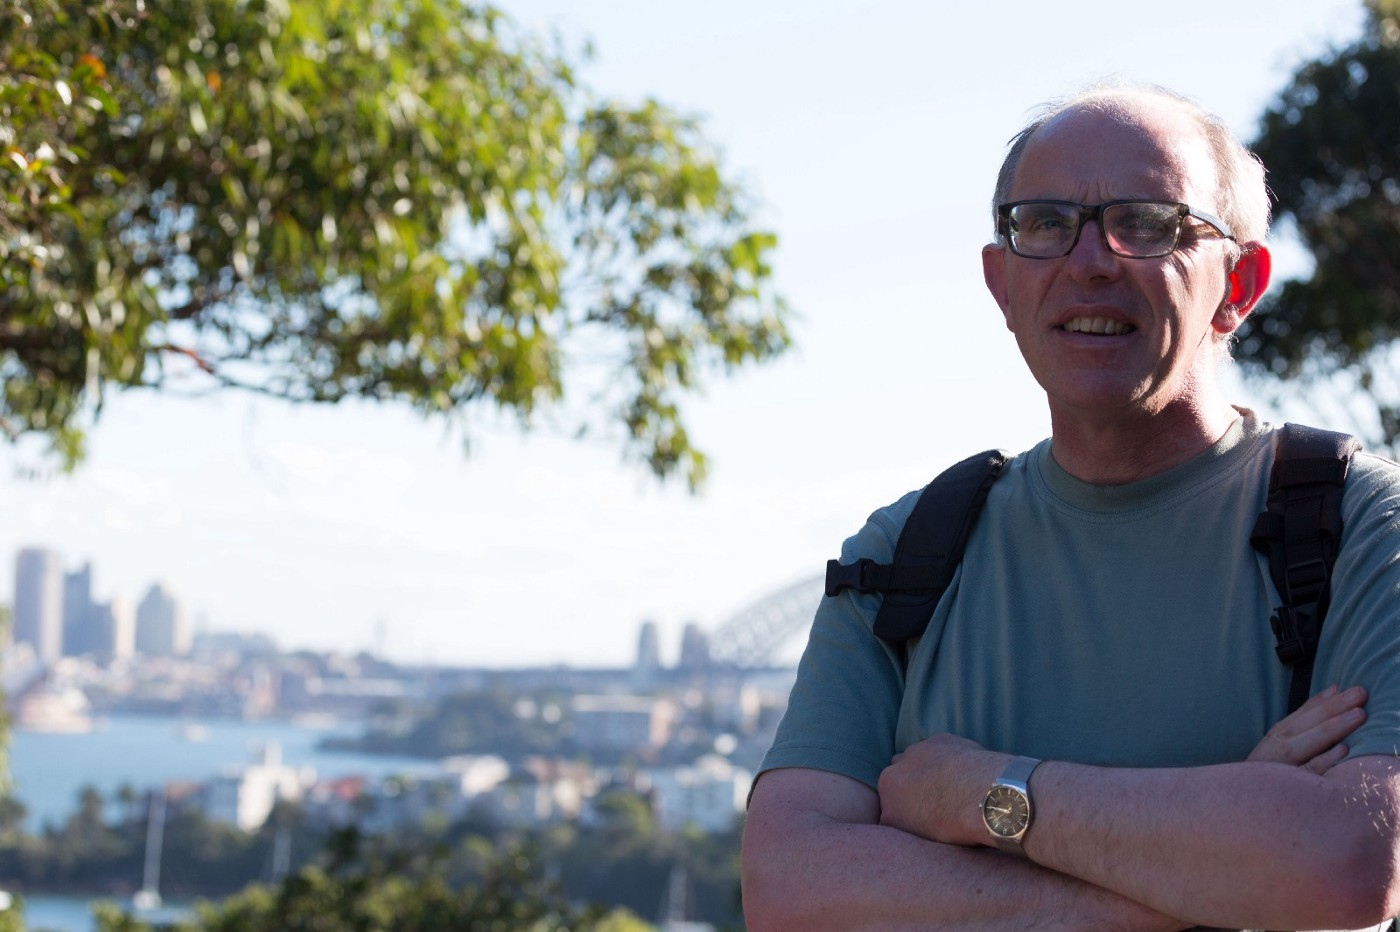 Photo of me with Sydney,  Australia in the background.